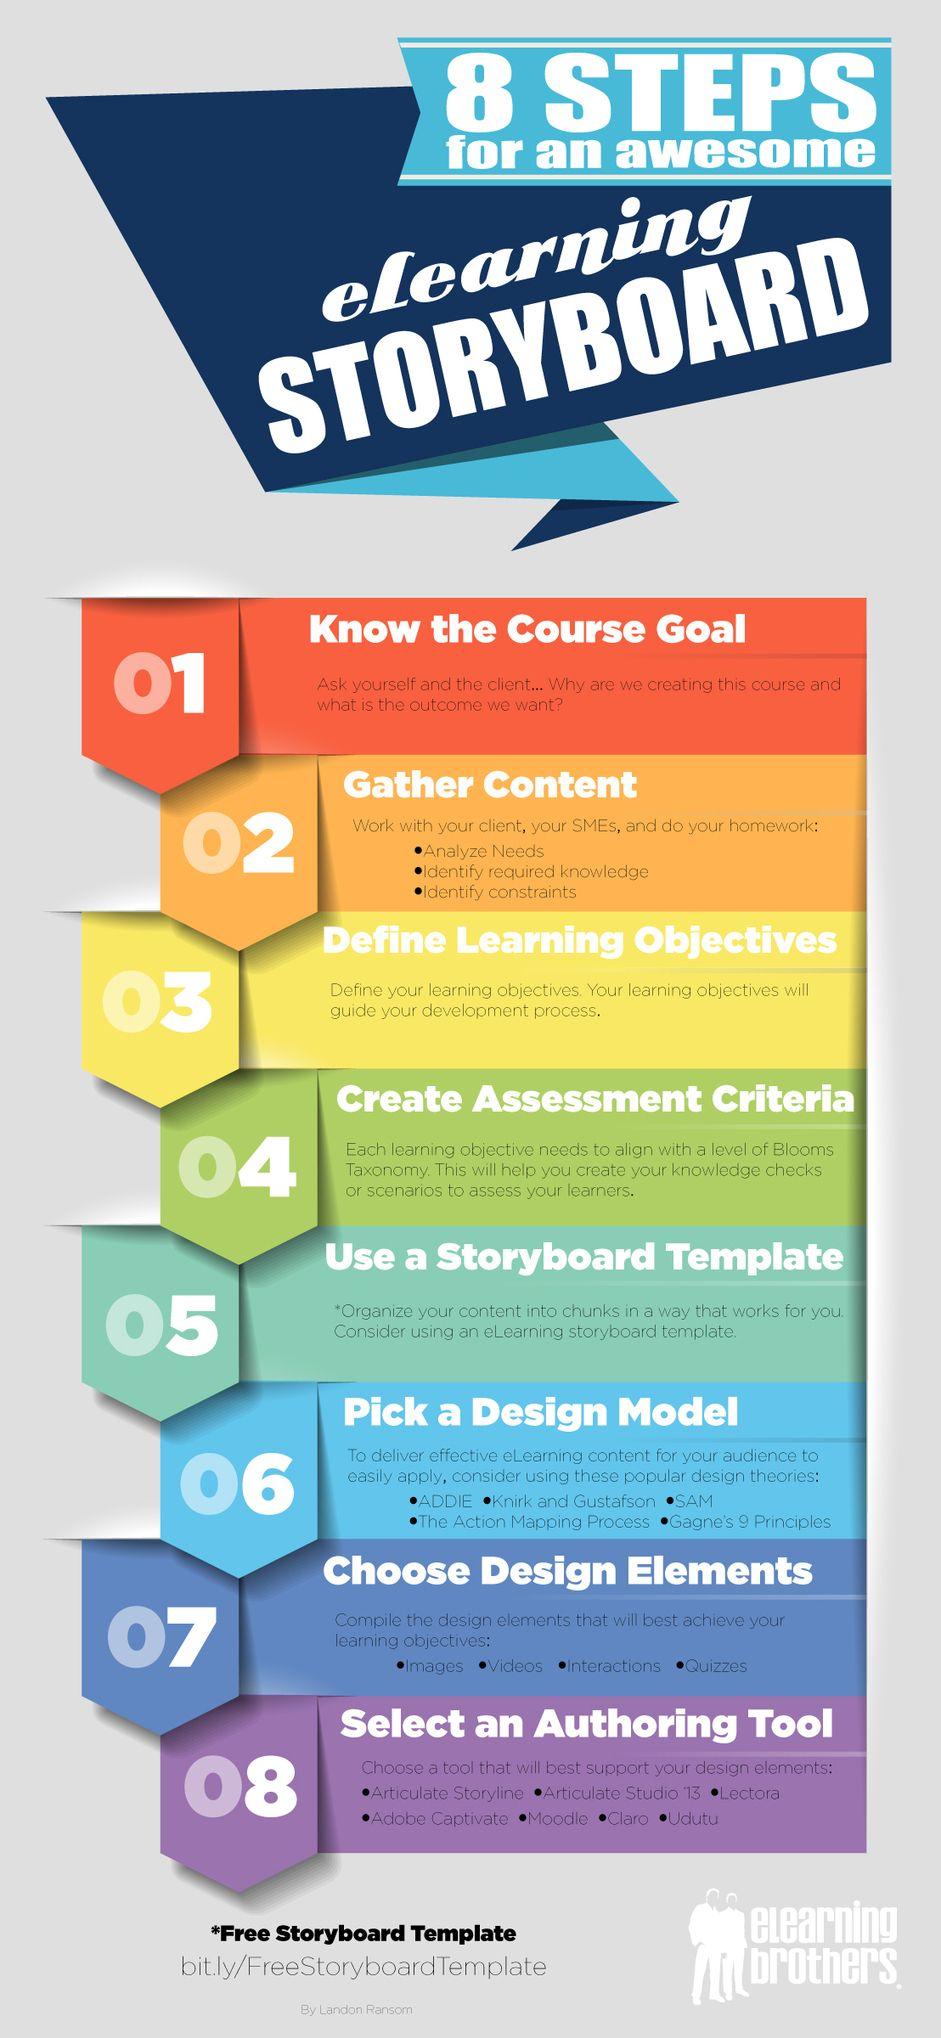 Steps For An Awesome Elearning Storyboard  Elearning Brothers